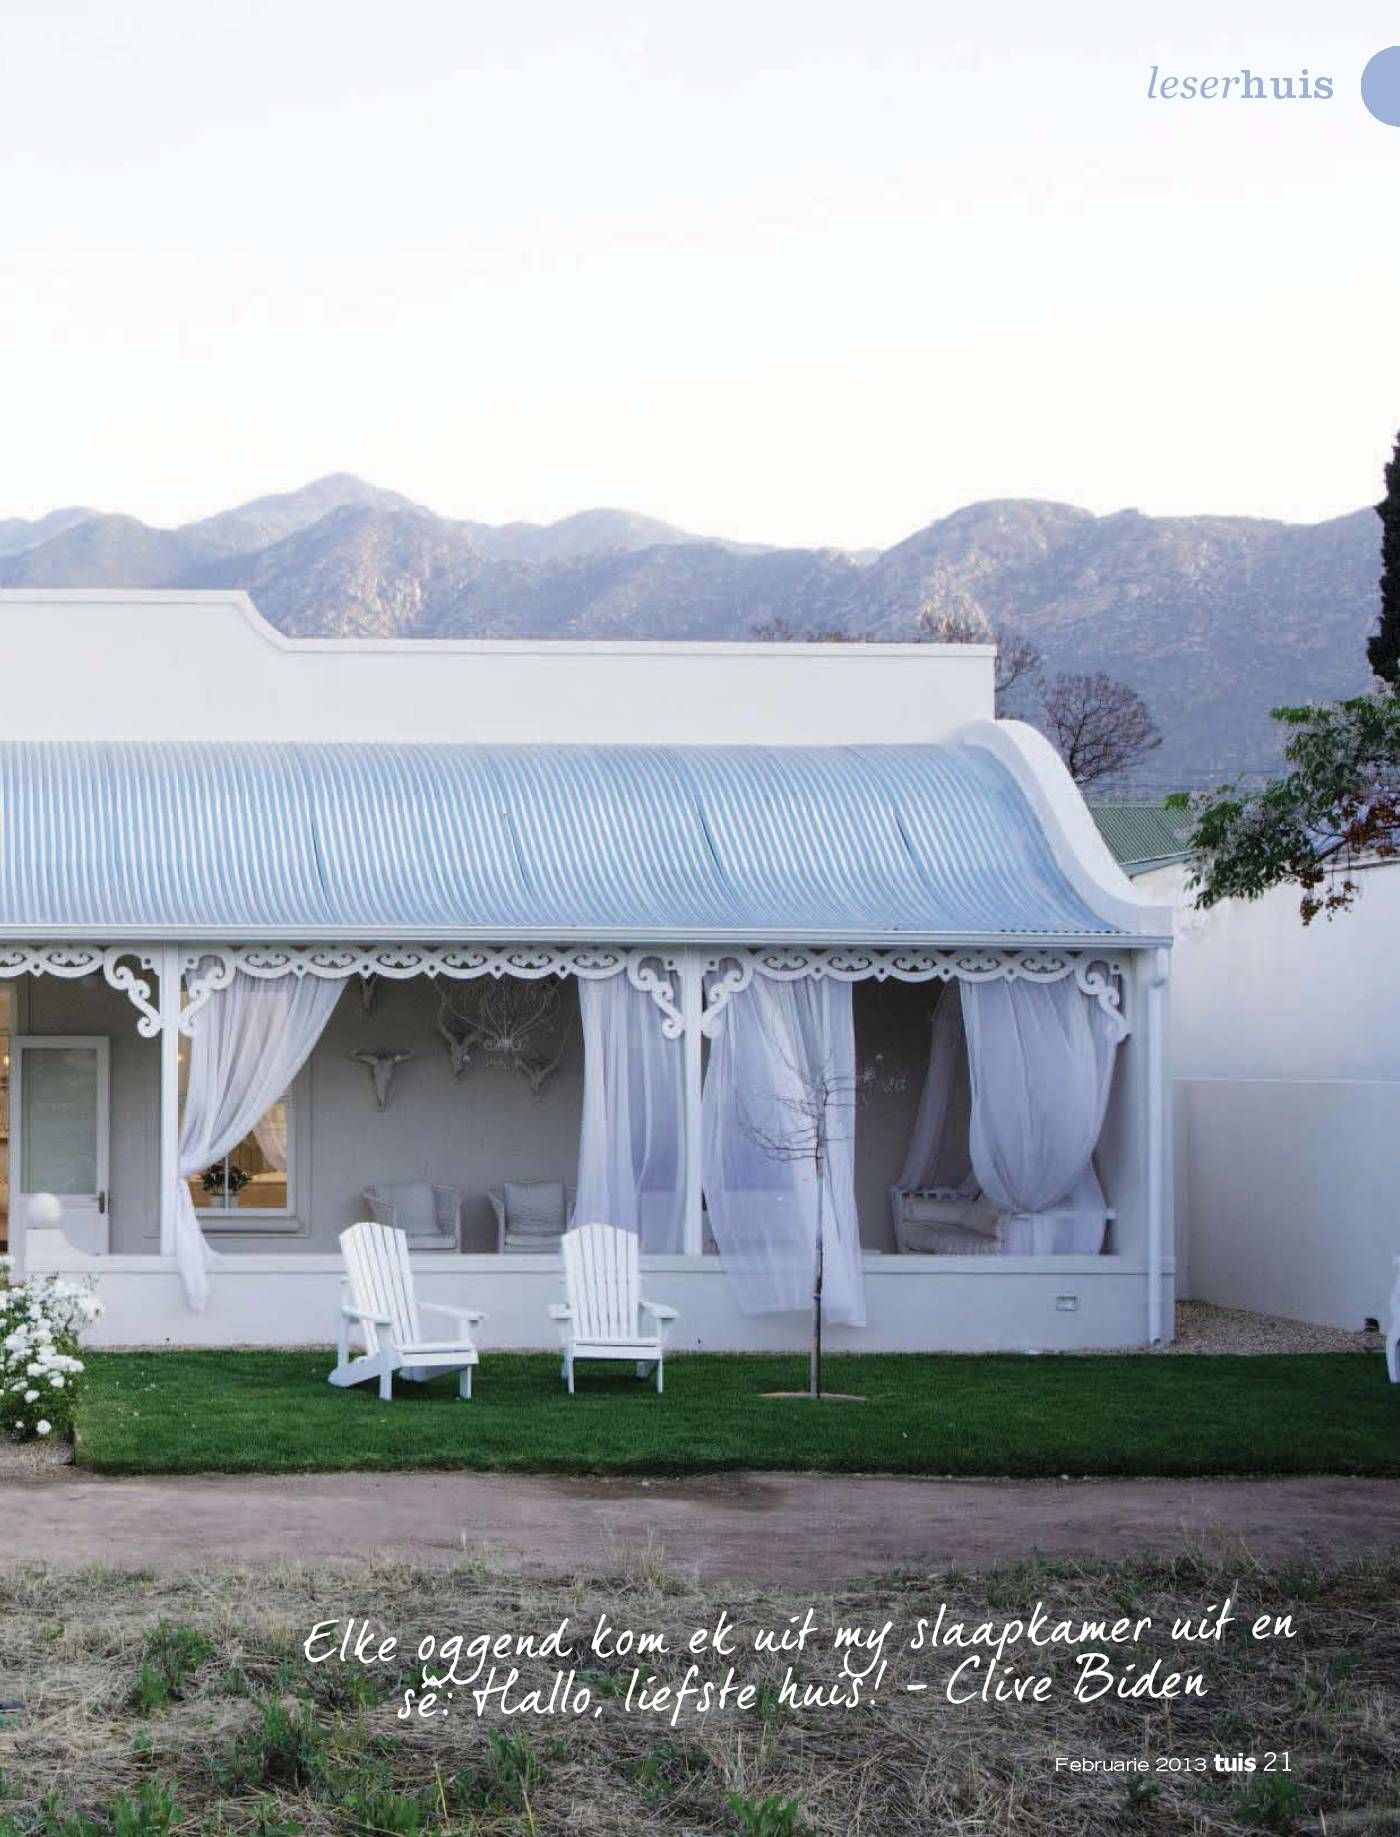 Beautiful karoo home home magazine the owner calls it the gentle house